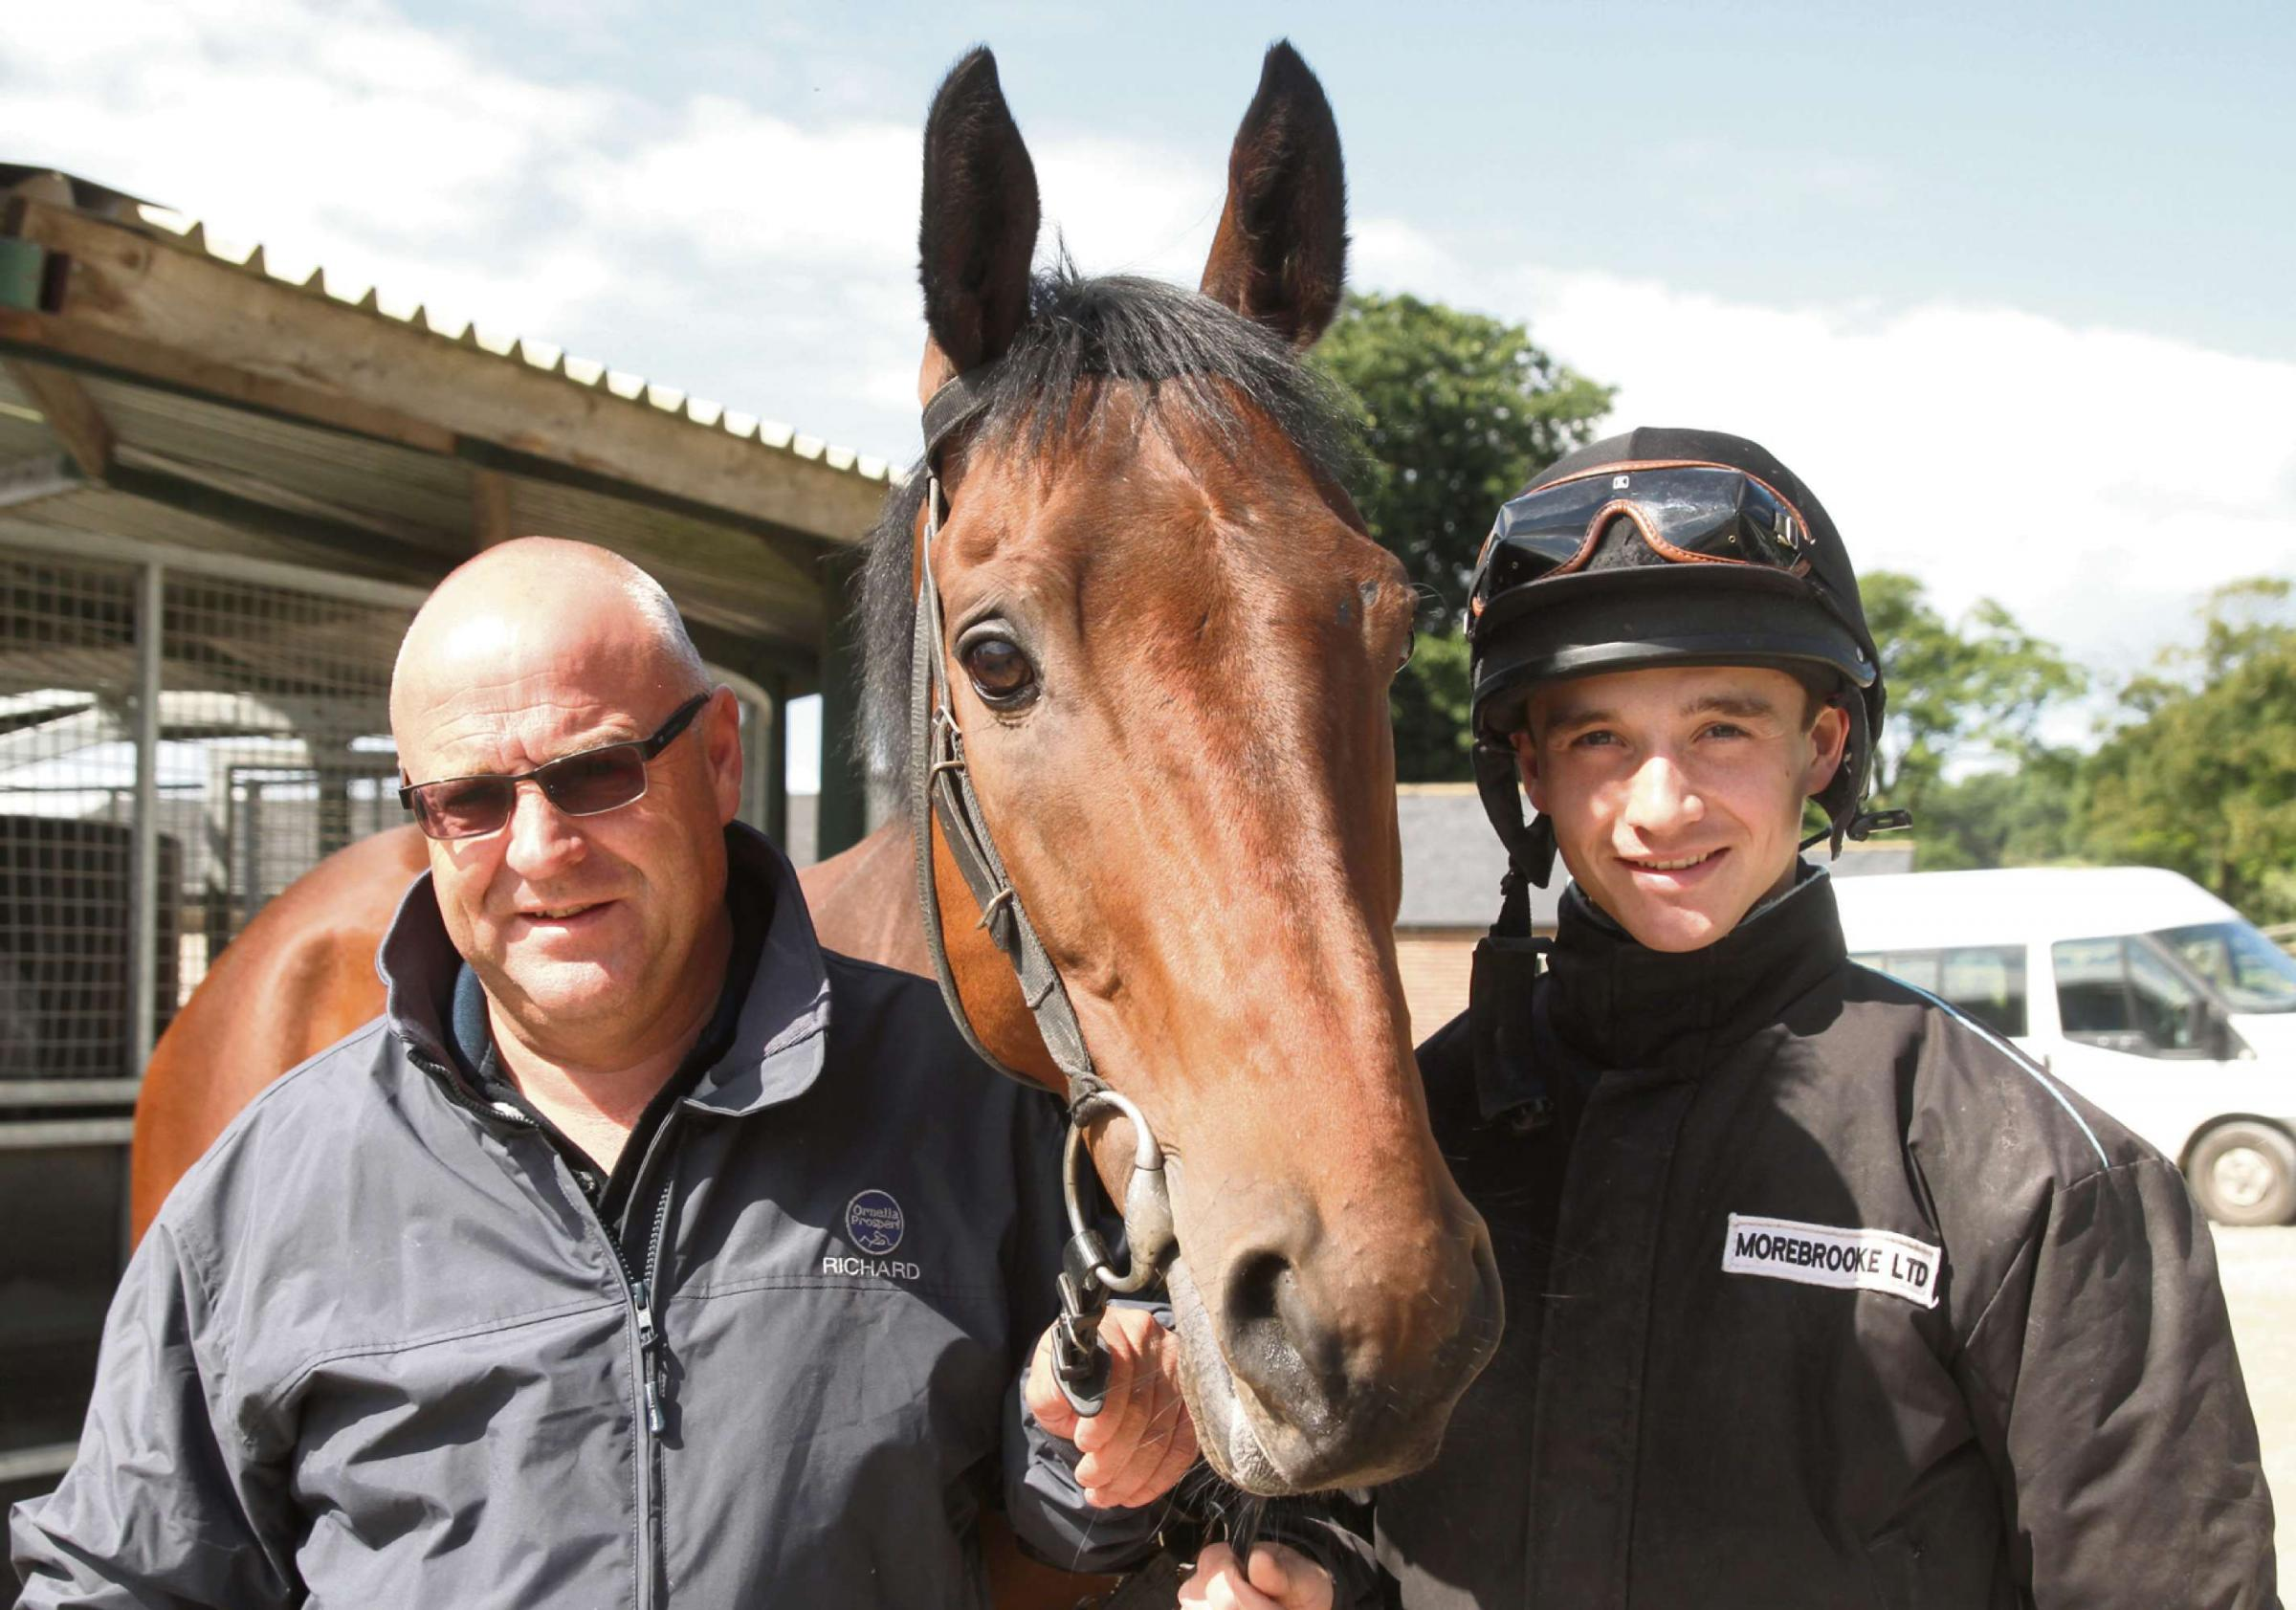 Ryedale jockey lands second big handicap in a week